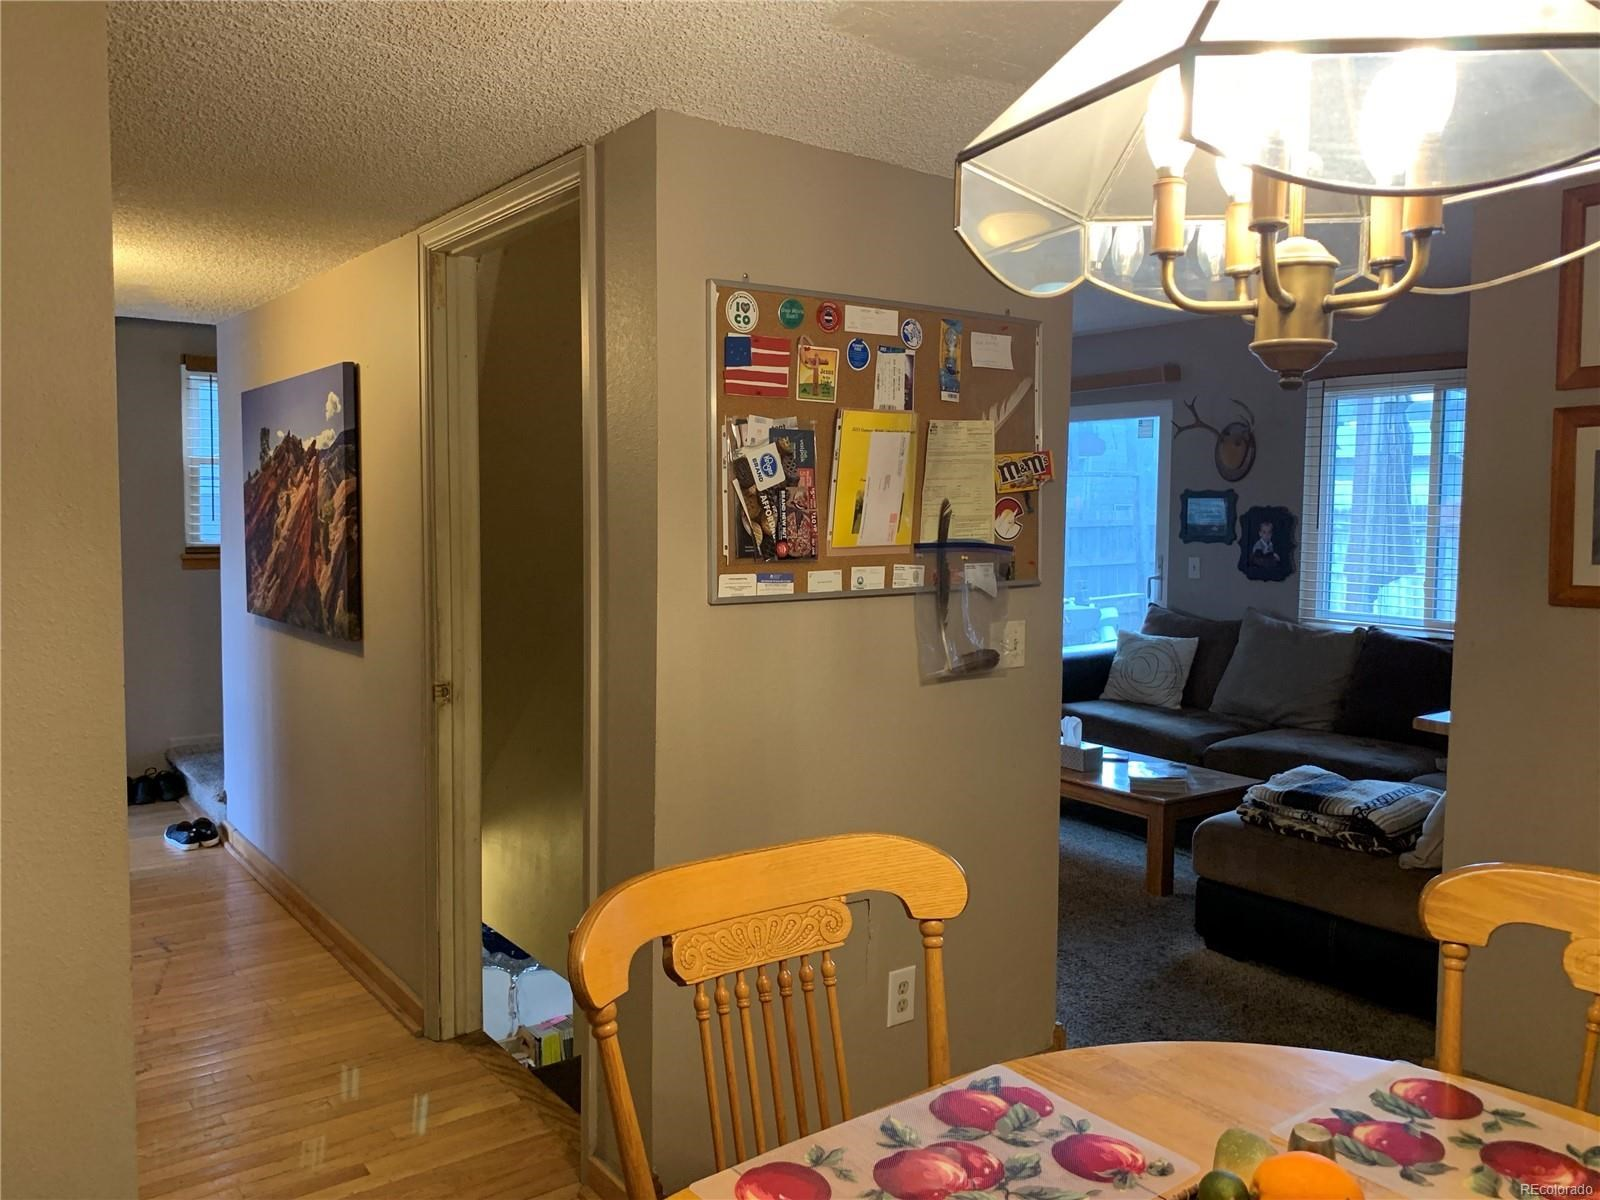 MLS# 7397939 - 13 - 12549 Forest Drive, Thornton, CO 80241